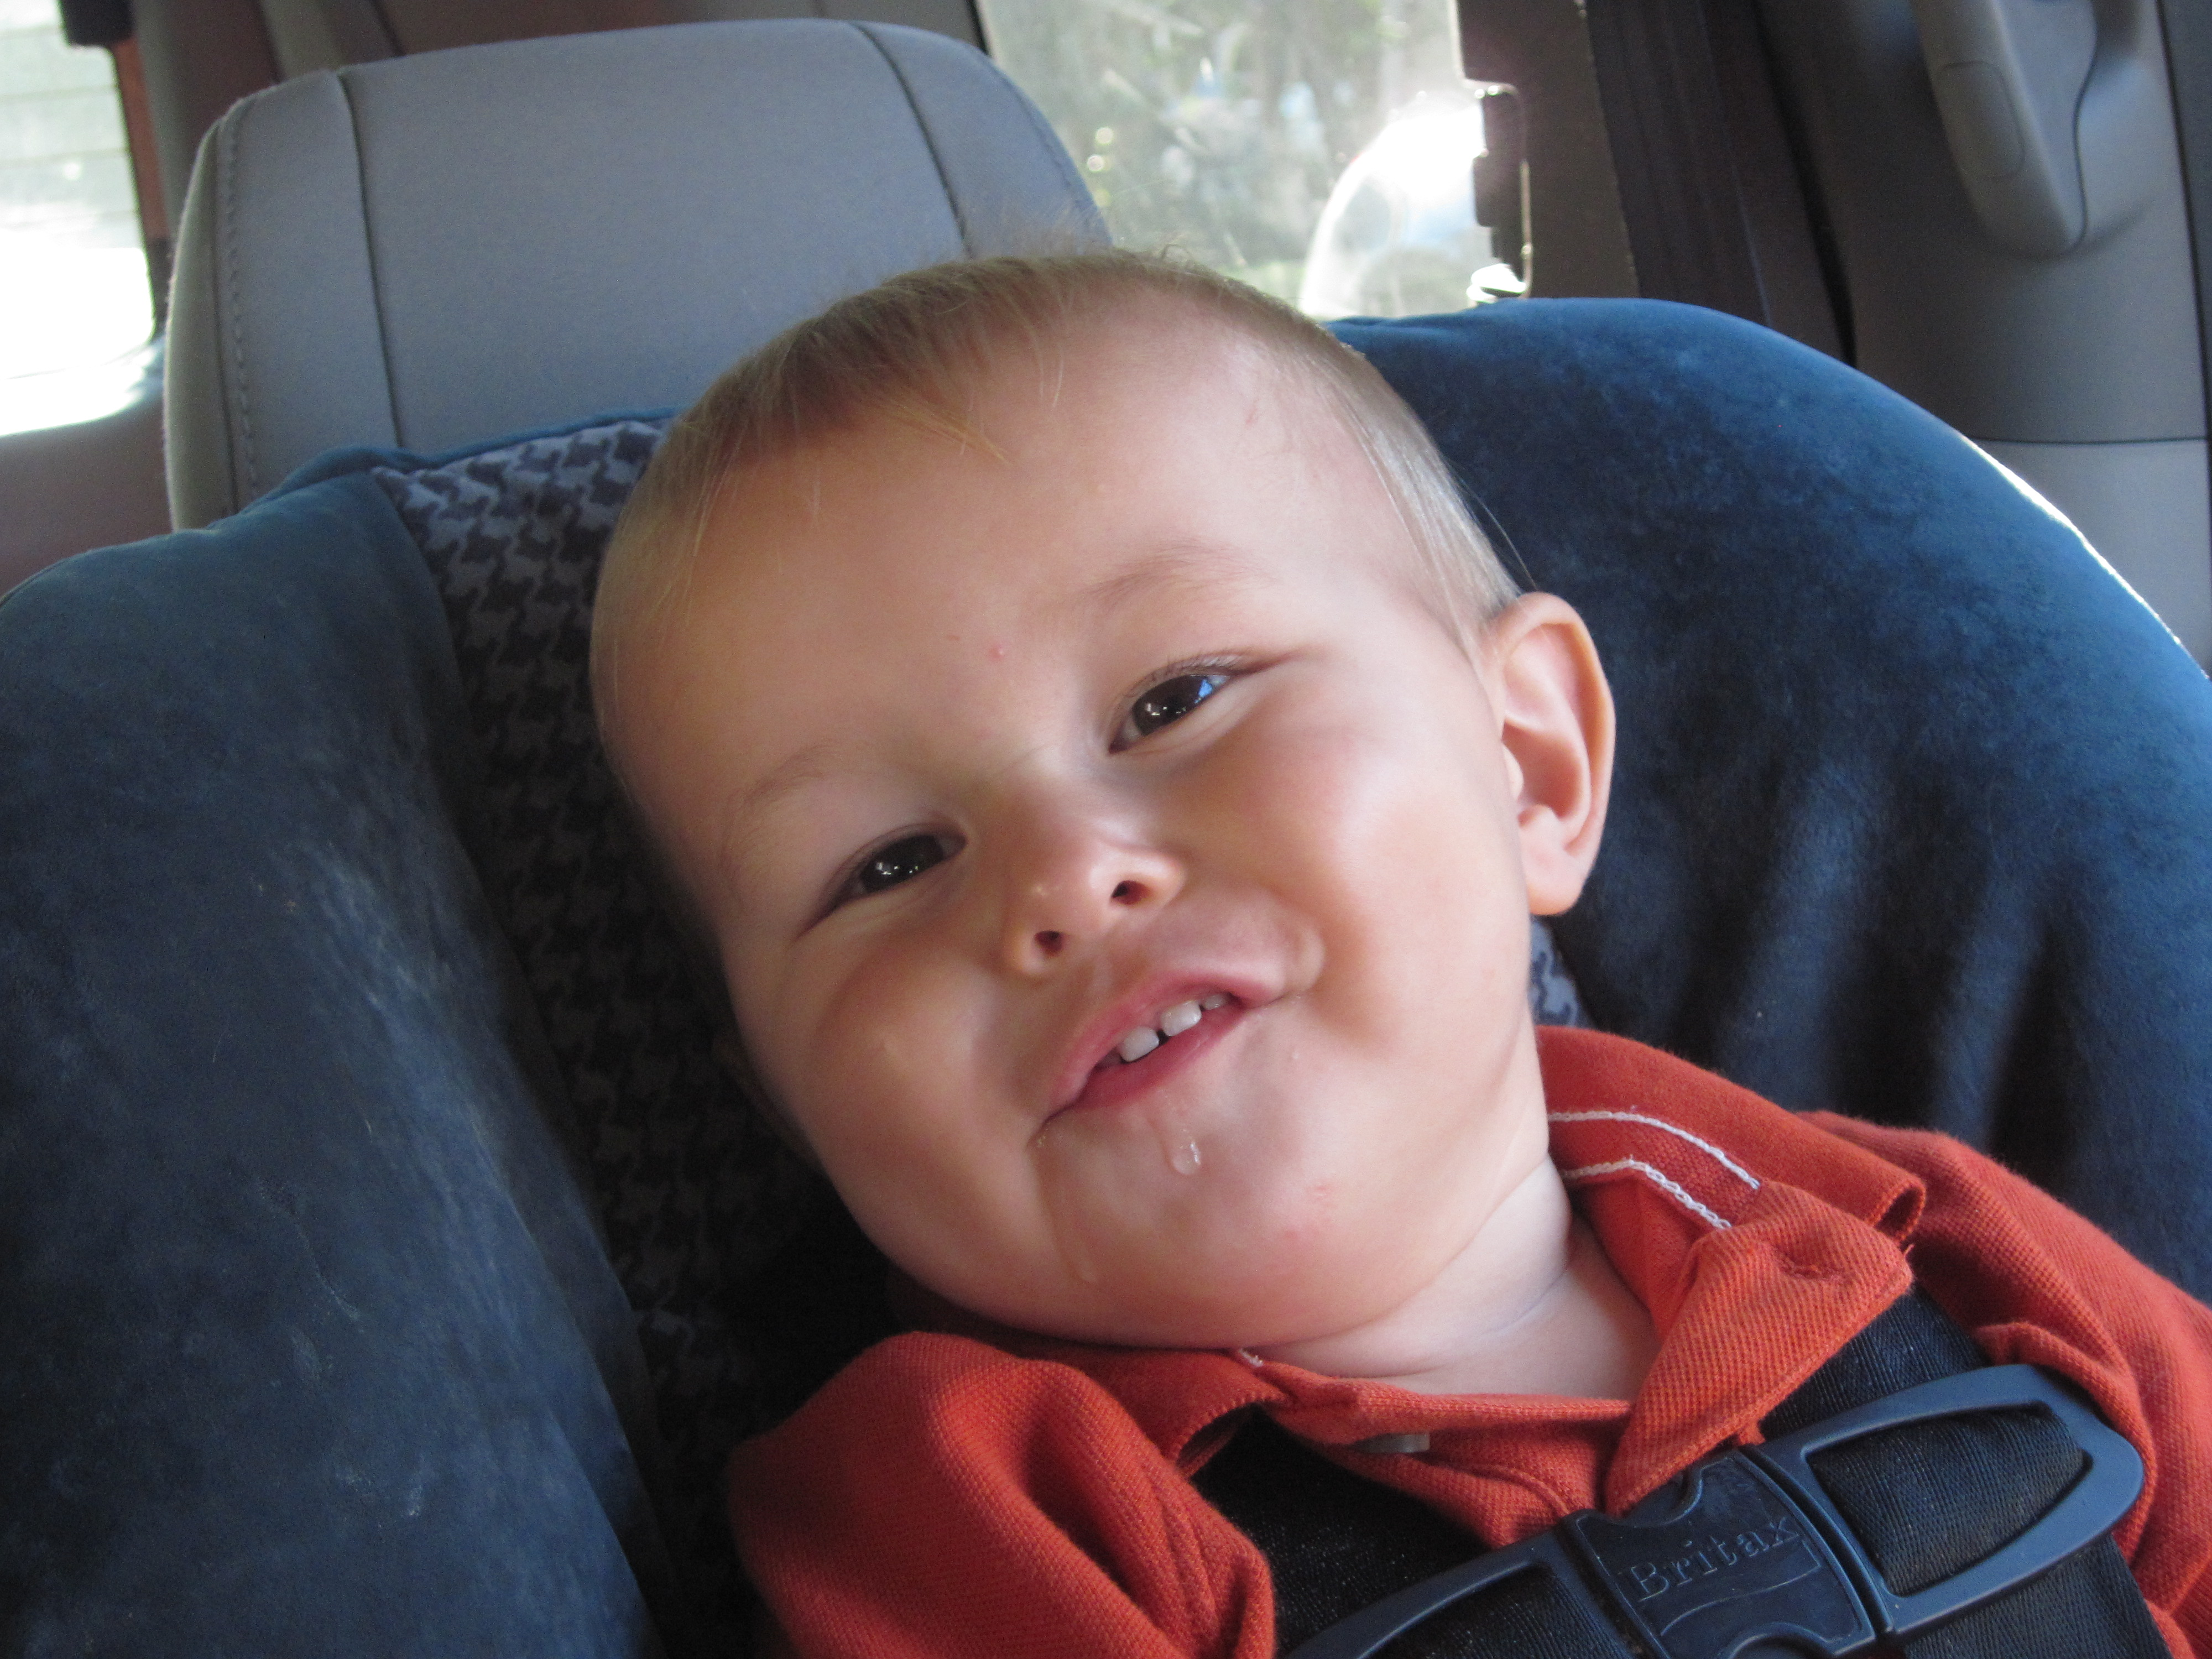 Ugly Fat Kid He smiles like this a lot,